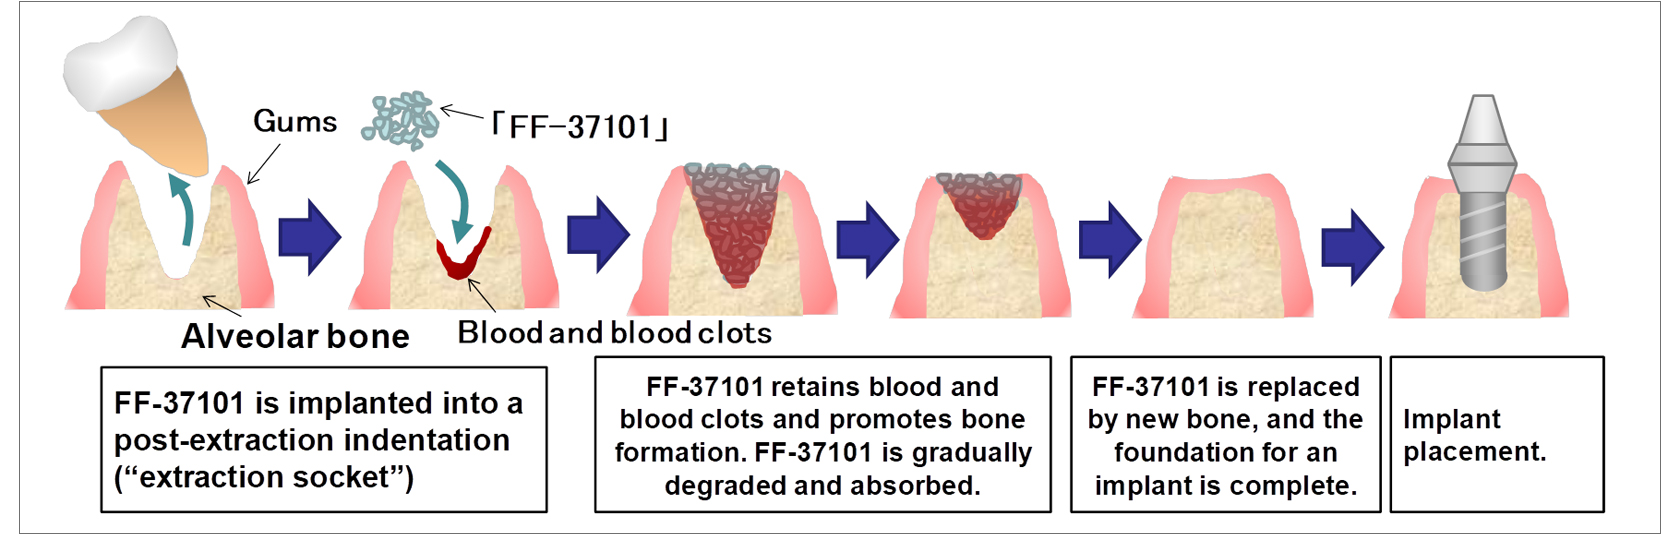 [image]The mechanism of bone regeneration using FF-37101 (in the case of dental implant treatment)